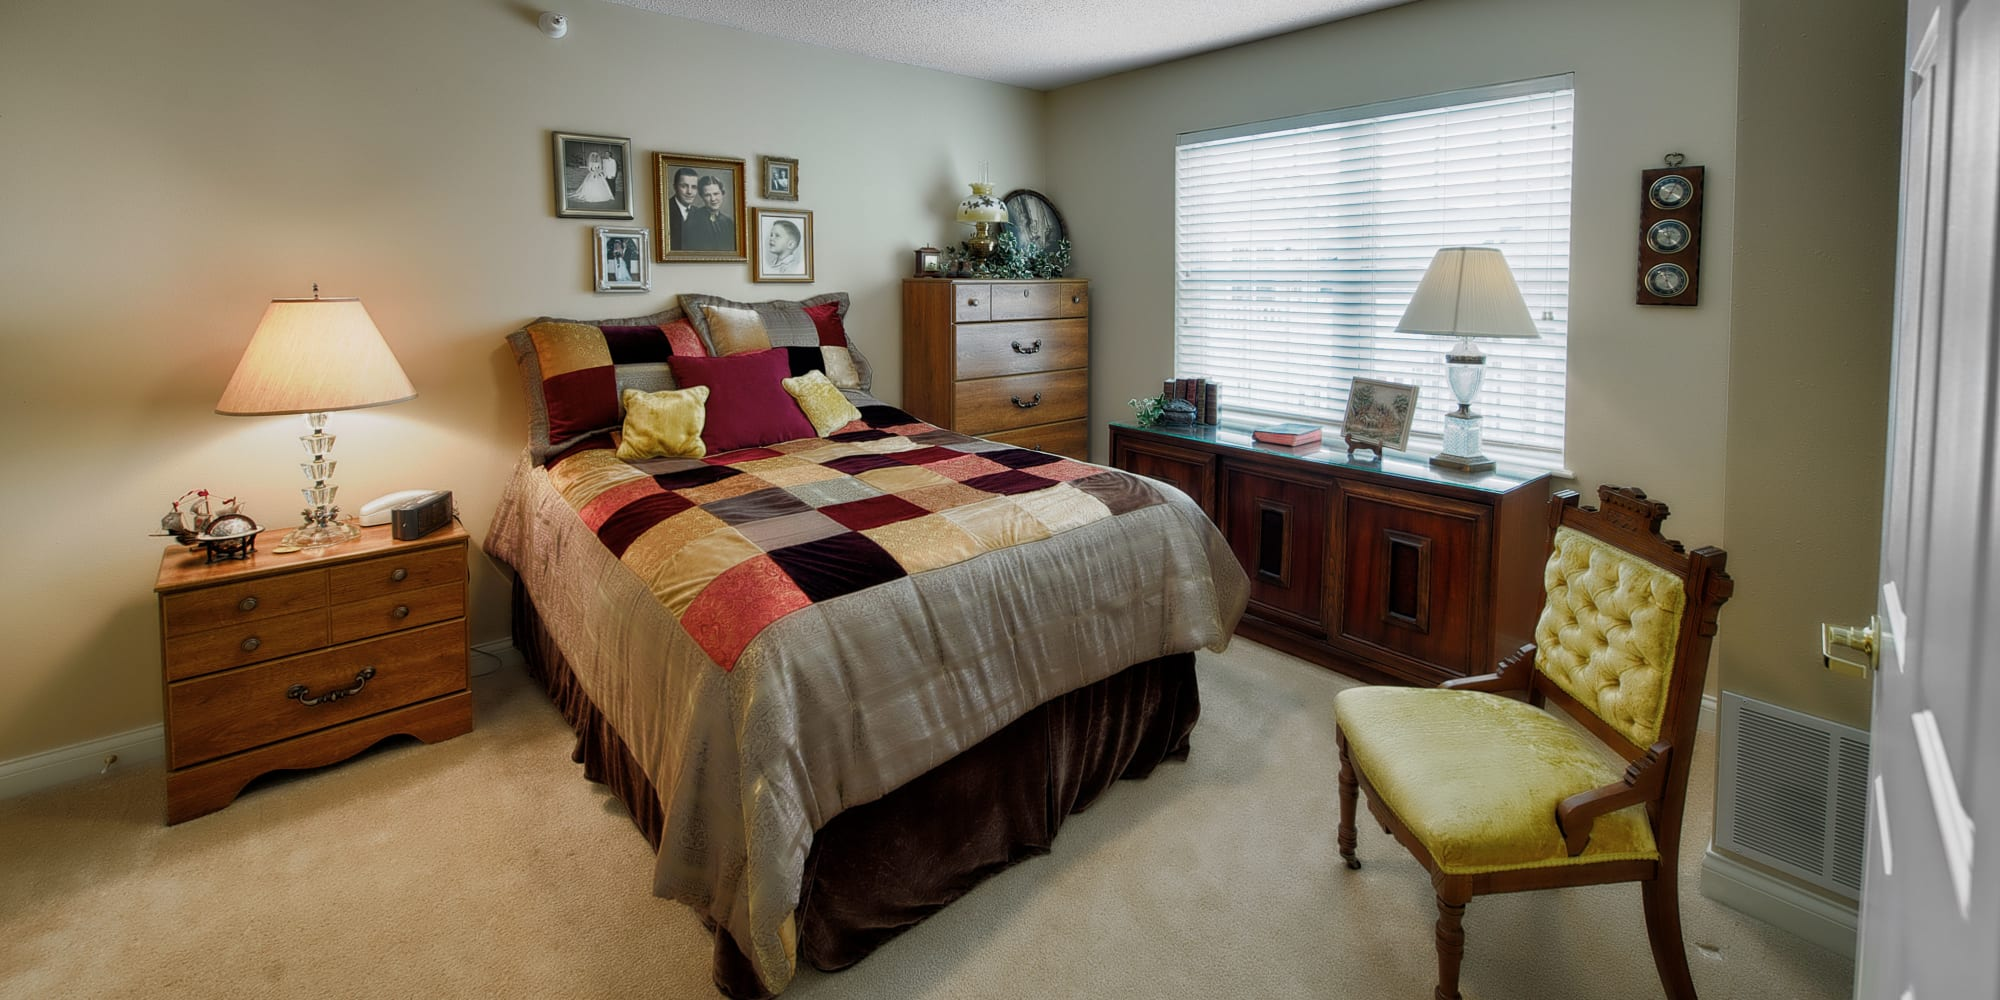 Resident bedroom at The Keystones of Cedar Rapids in Cedar Rapids, Iowa.